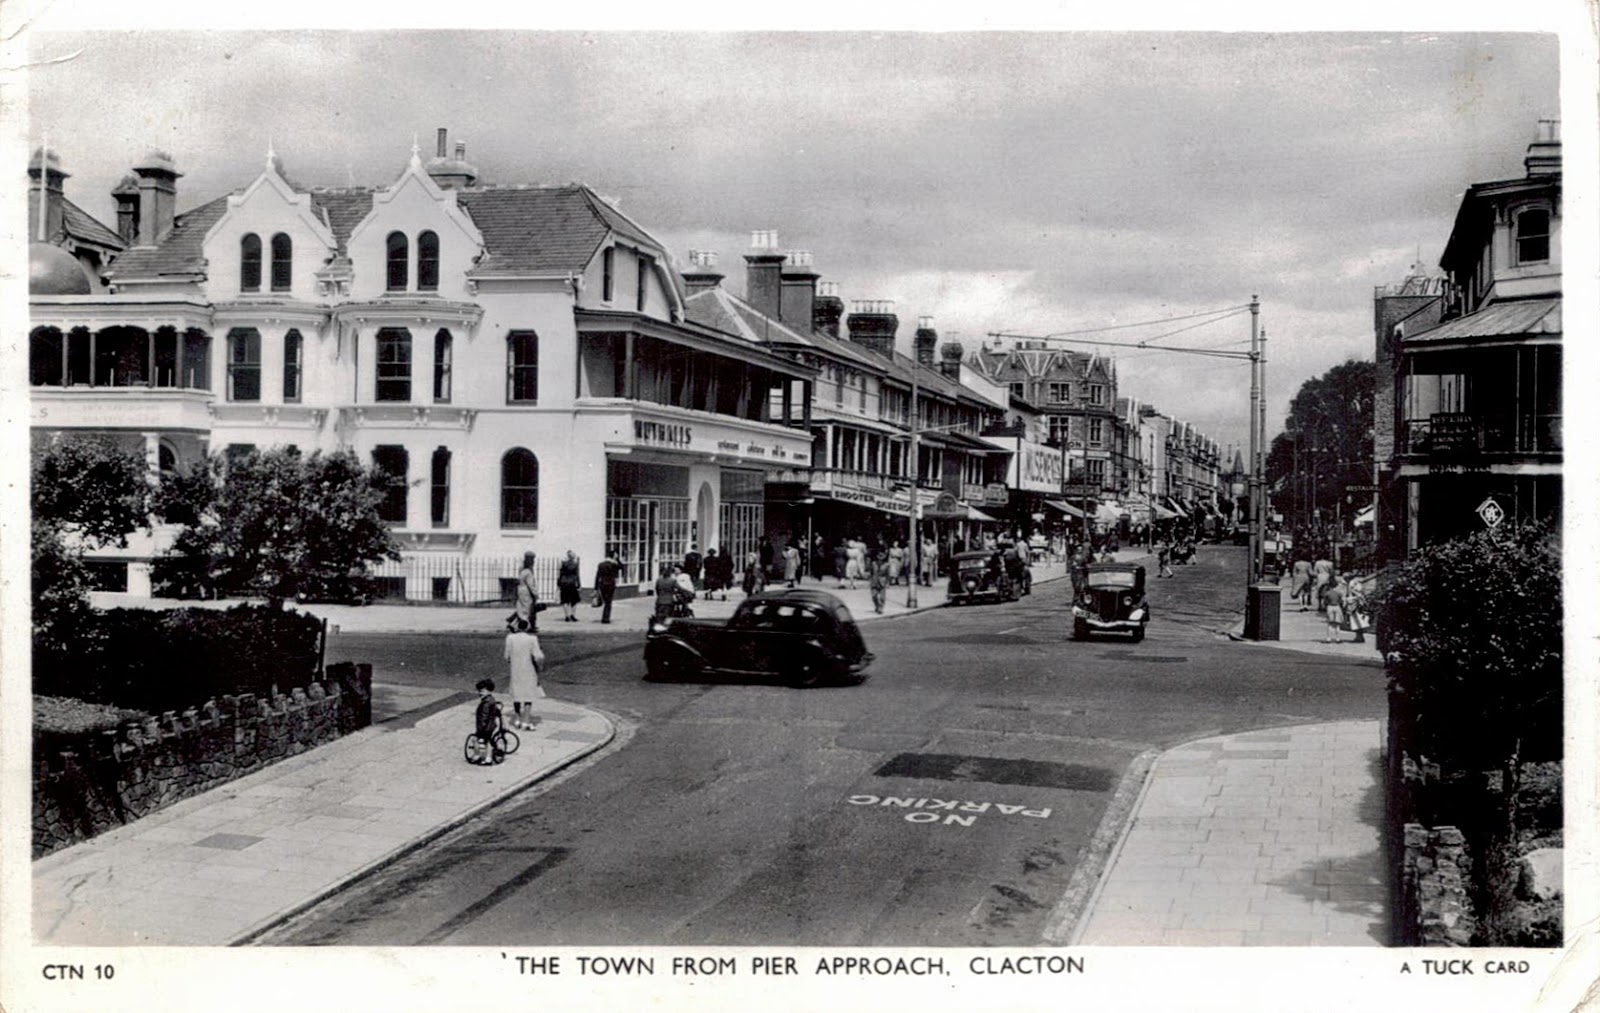 Clacton Town, Essesx in the 1950s